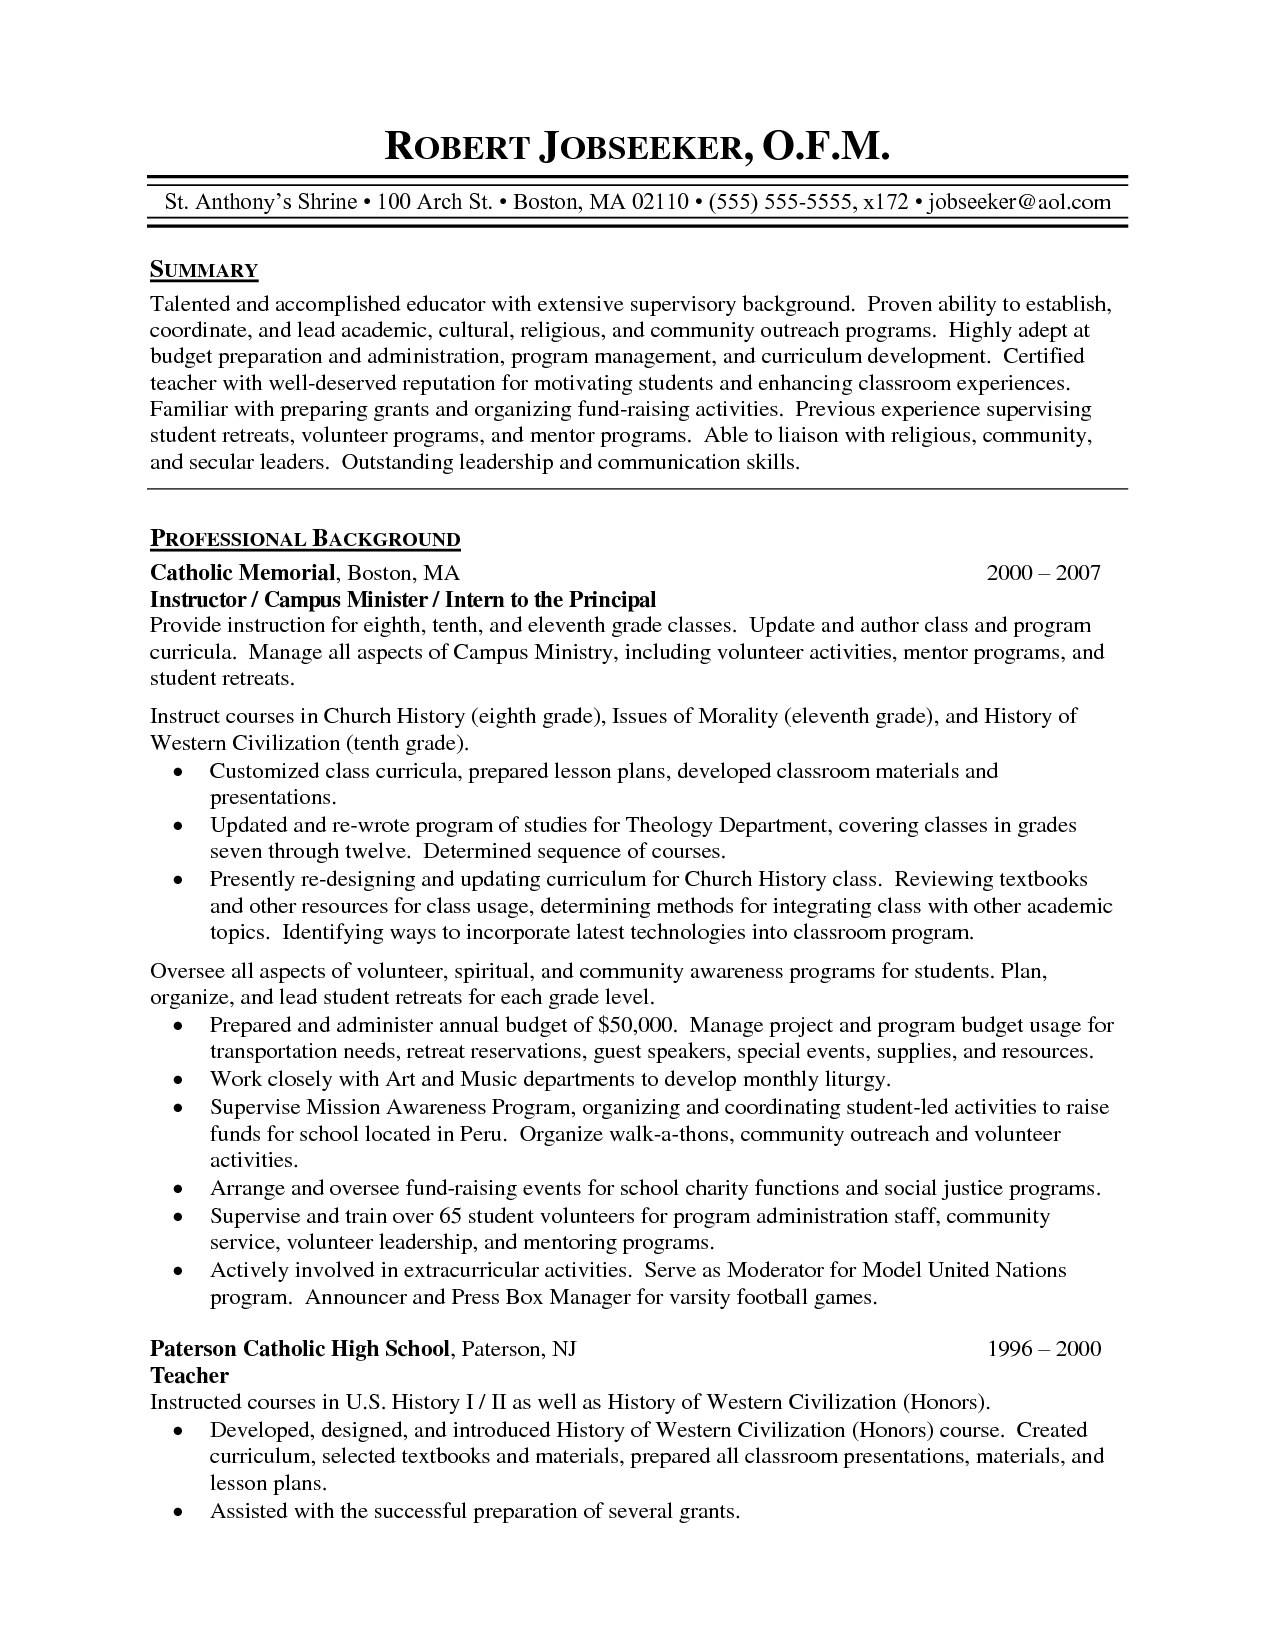 Elementary School Teacher Resume Sample High School Teacher Resume Perfect  Home Design Idea